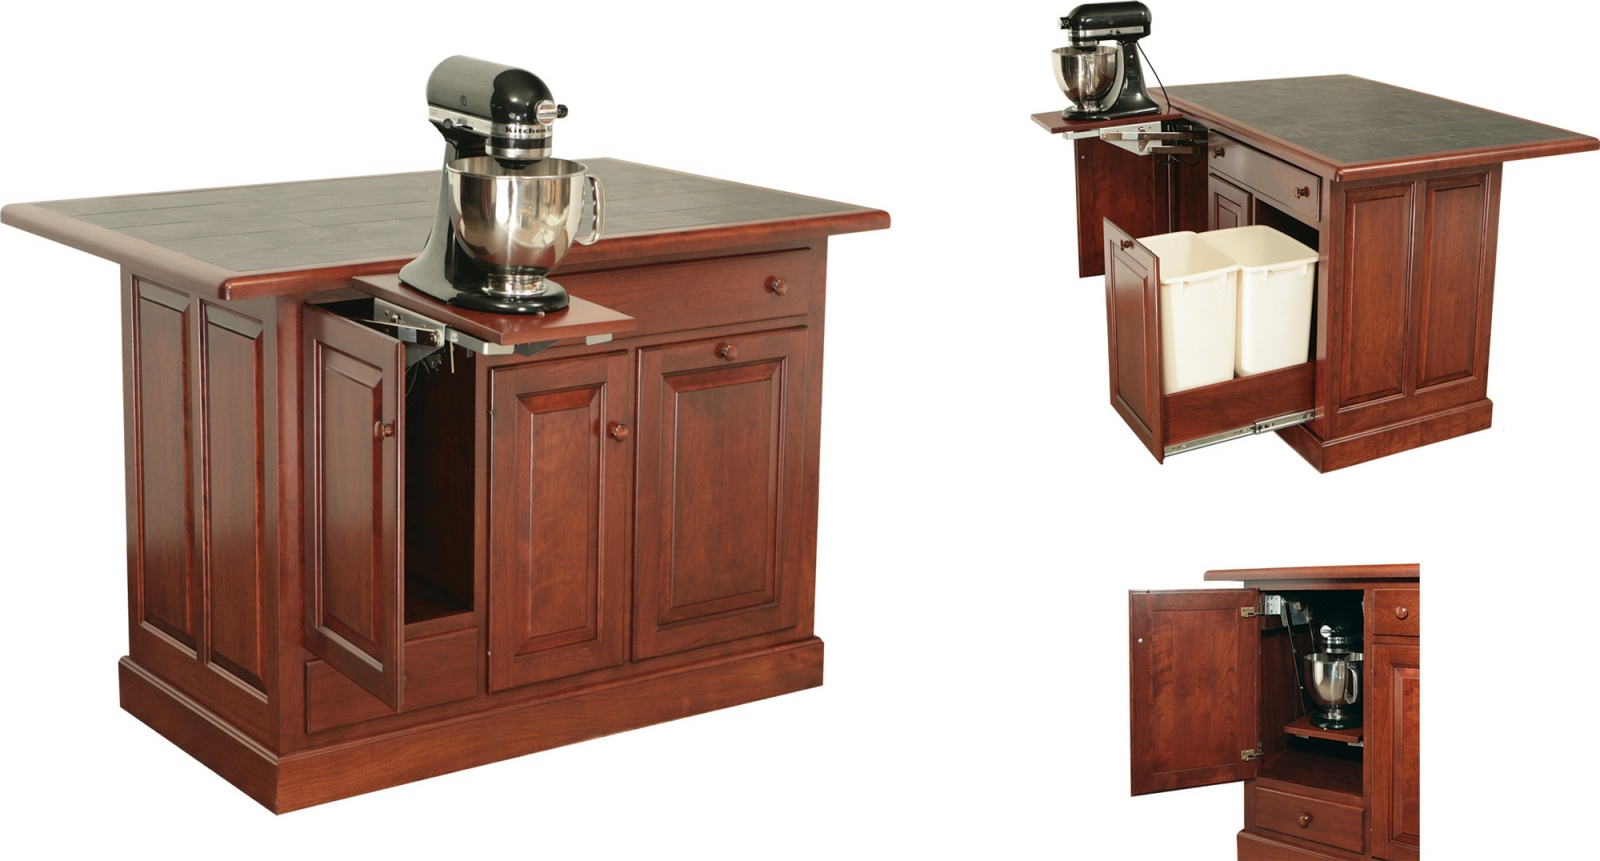 IS-76 Raised Panel with Wastebasket Pullout & Mixerlift.jpg